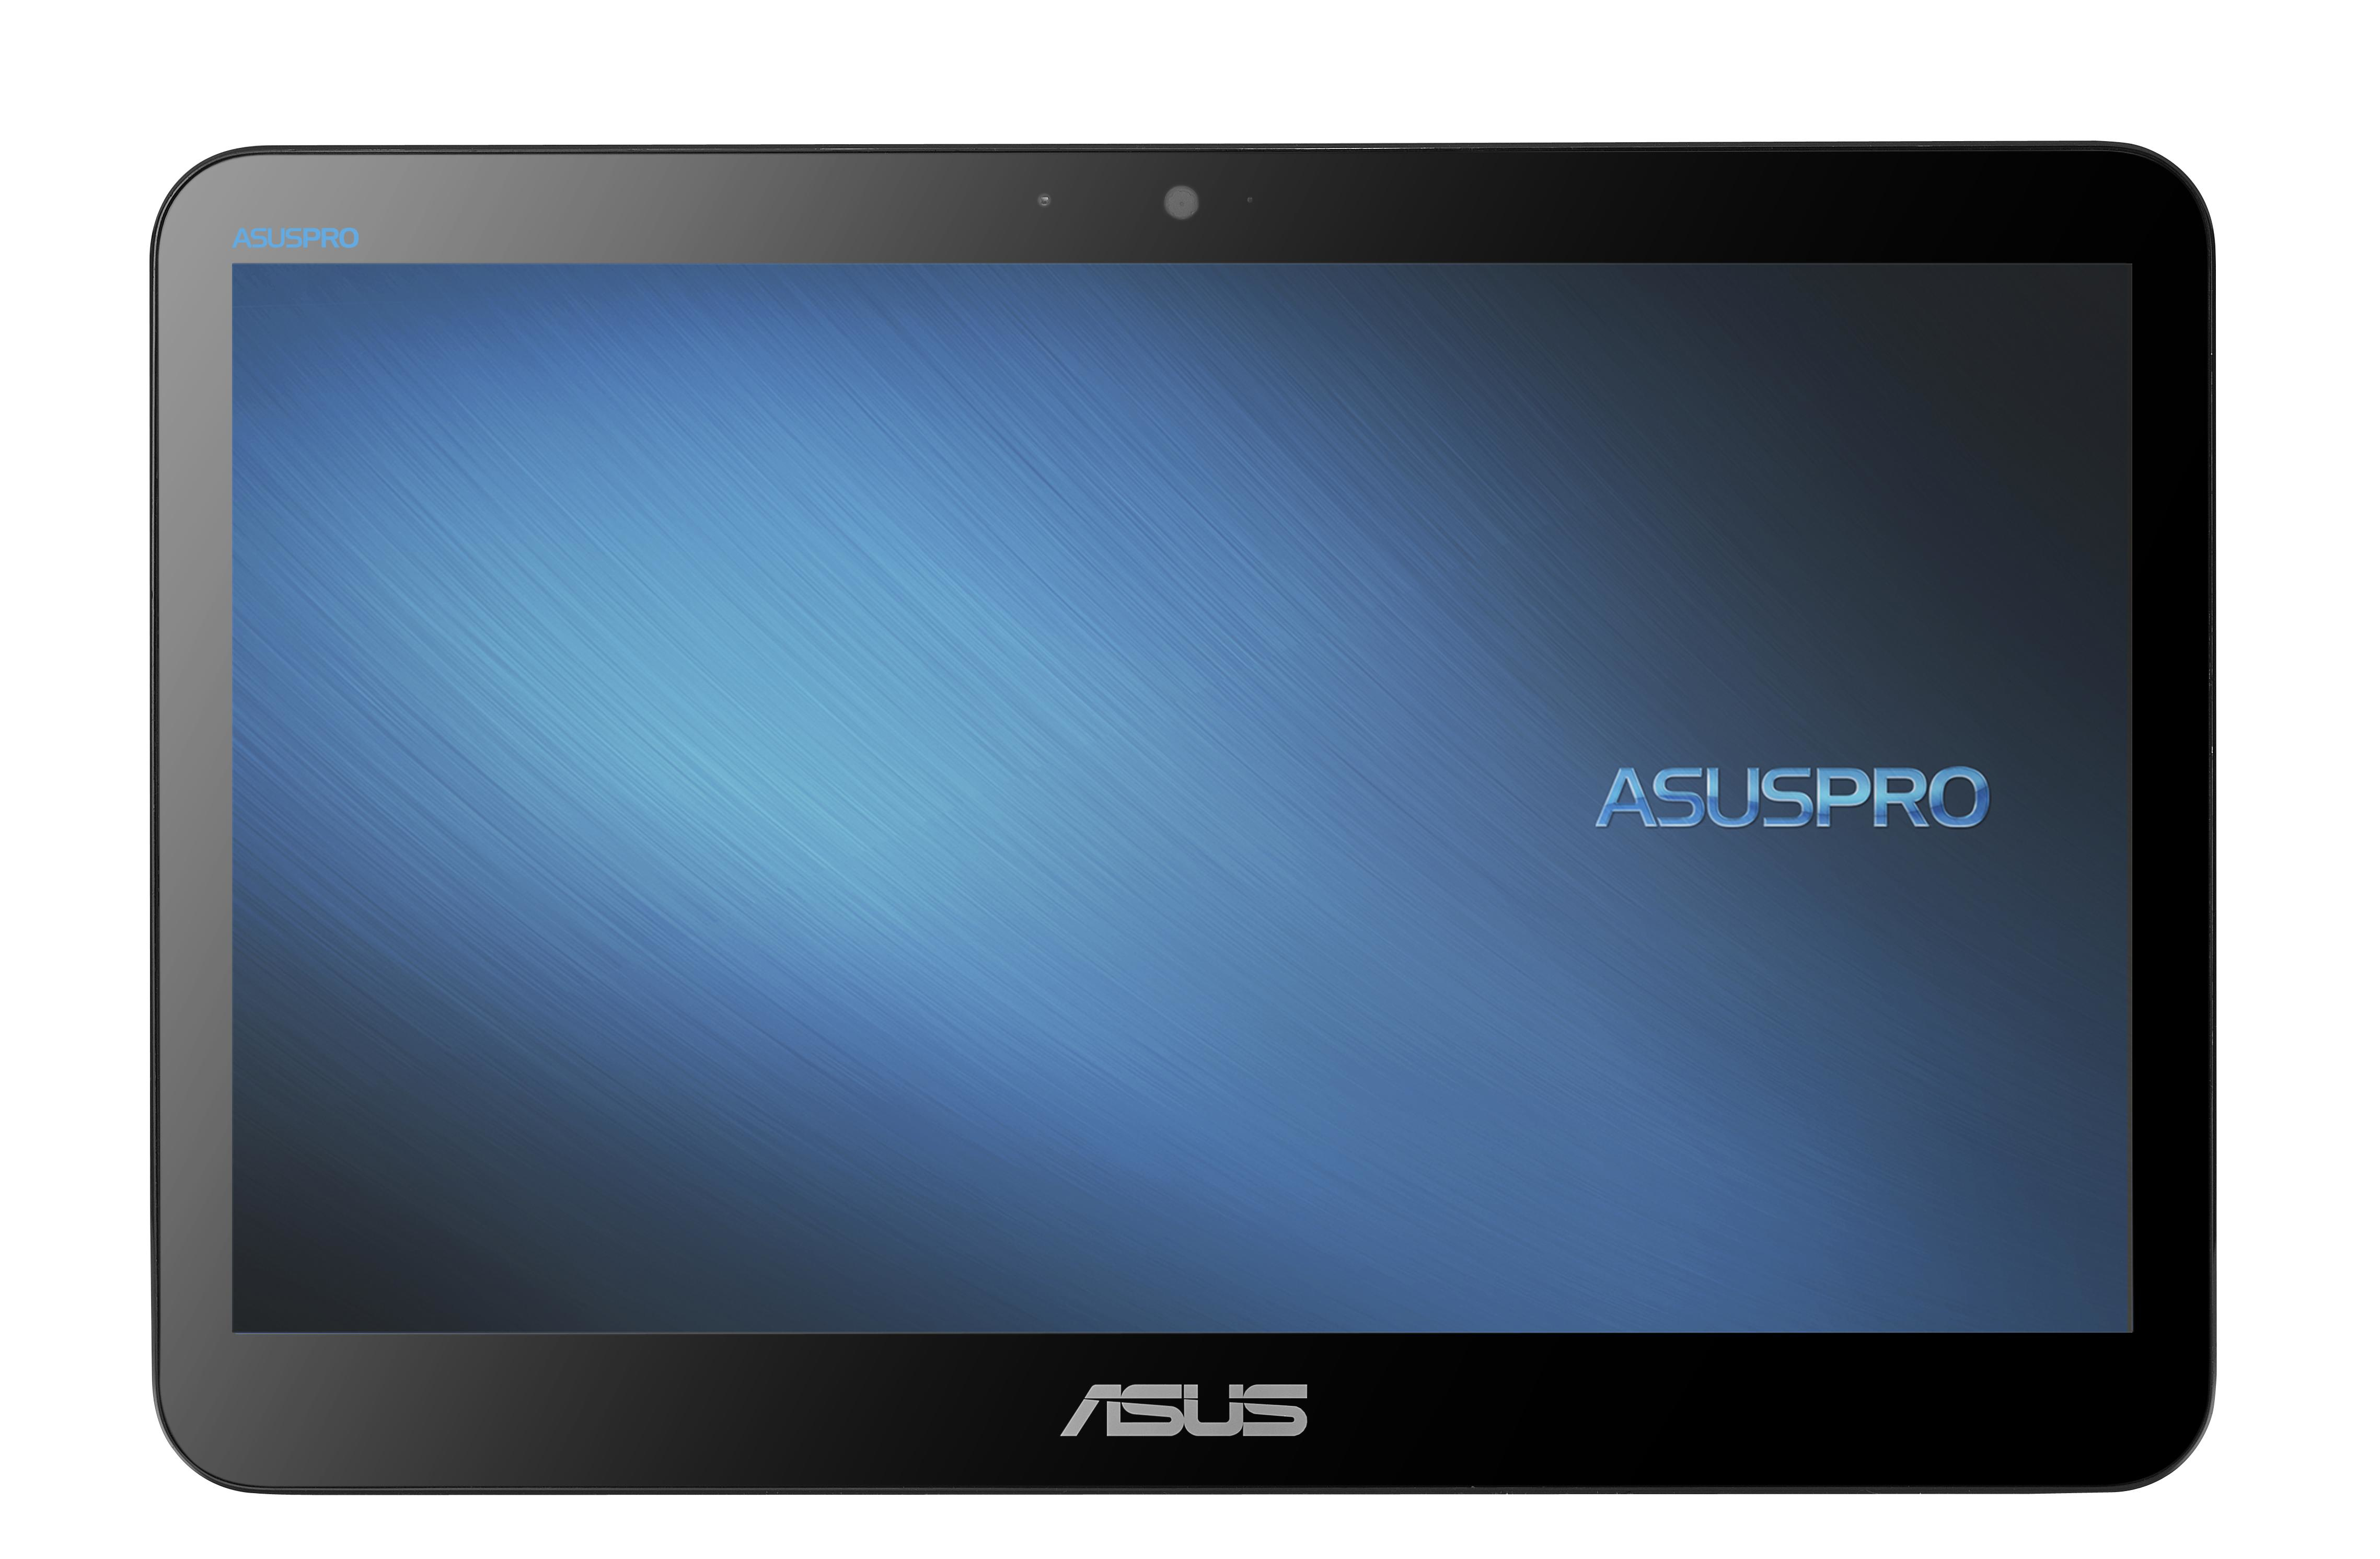 ASUS EeeTOP A4110-BD155M Celeron N3150 39,6cm non-glare 15,6Zoll LCDTouch 4096MB 128GBSSD HDGrafik Bluetooth4.0 noOS noKBM nowebcam